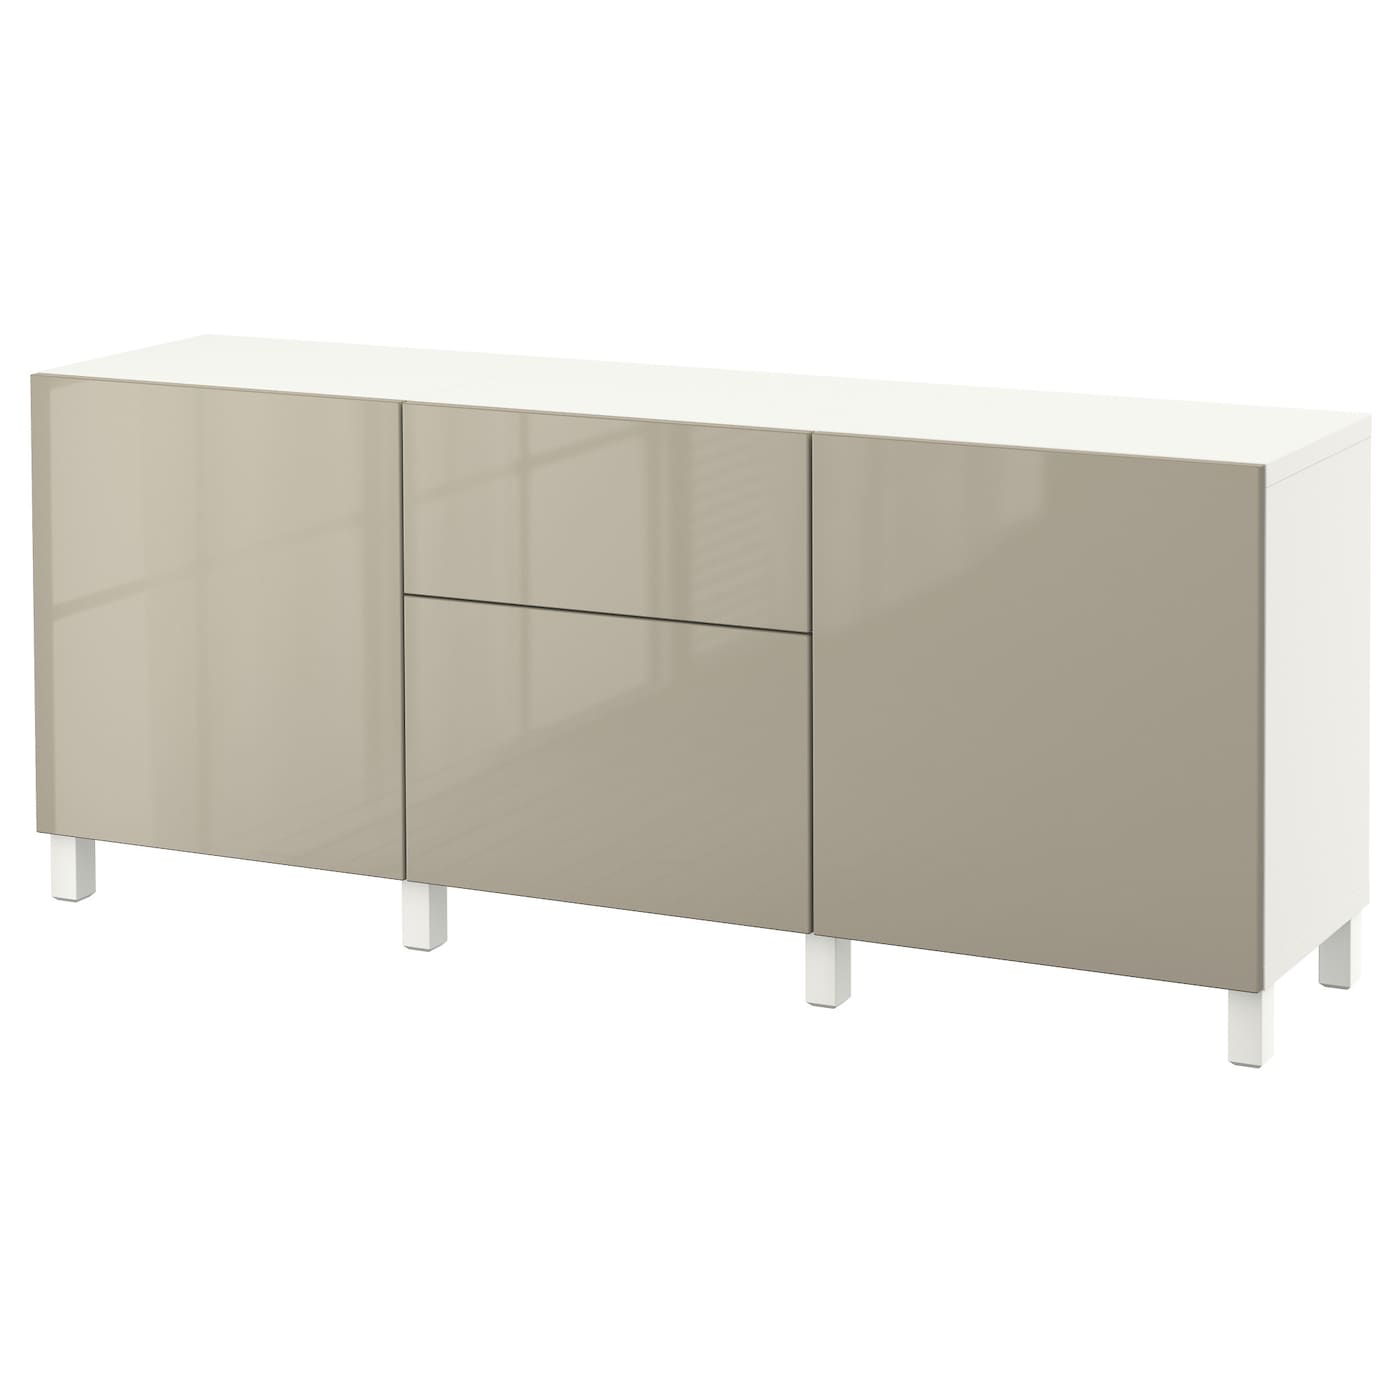 best combinaison rangement tiroirs blanc selsviken brillant beige 180x40x74 cm ikea. Black Bedroom Furniture Sets. Home Design Ideas